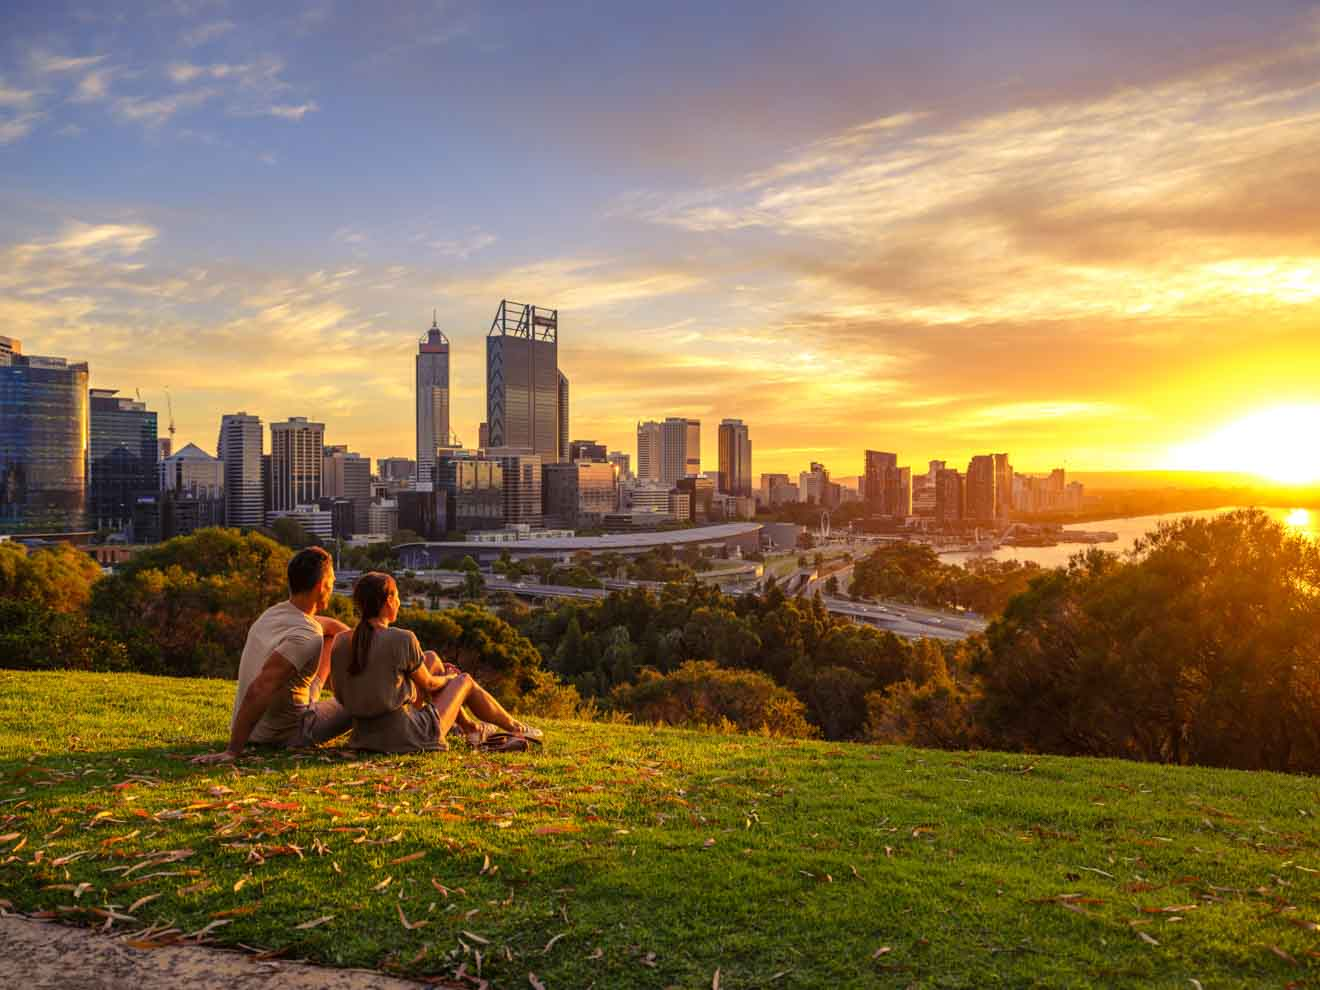 things to do in perth tomorrow - Kings Park and Botanical Garden